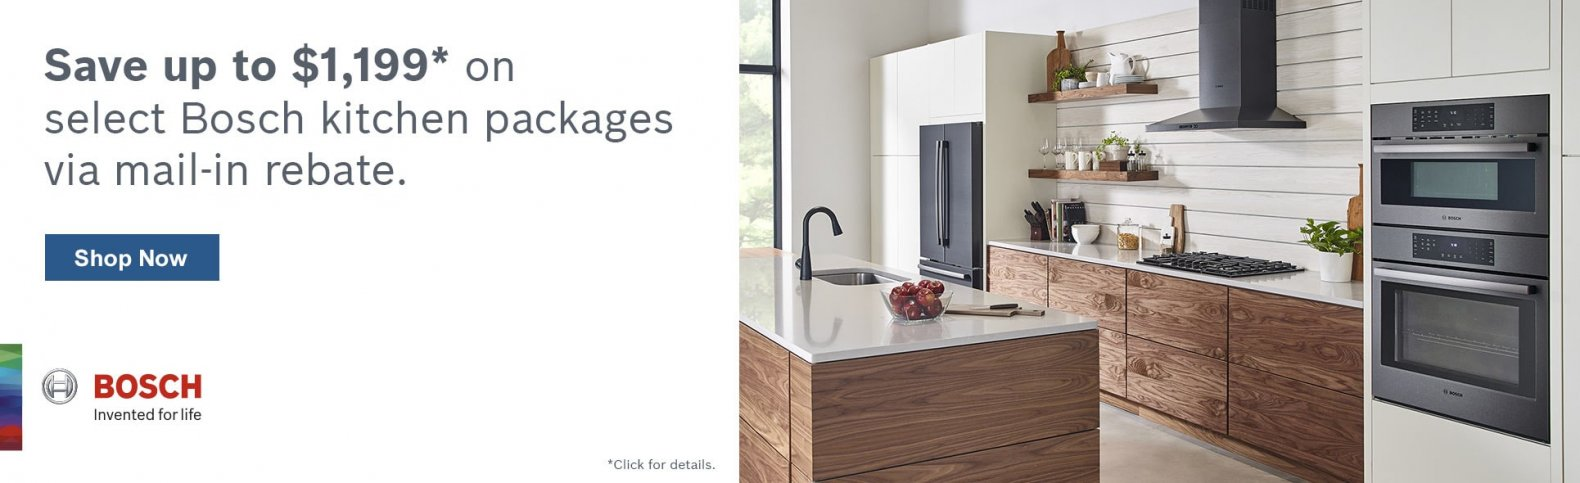 Bosch Save up to $1199 on select Bosch Packages